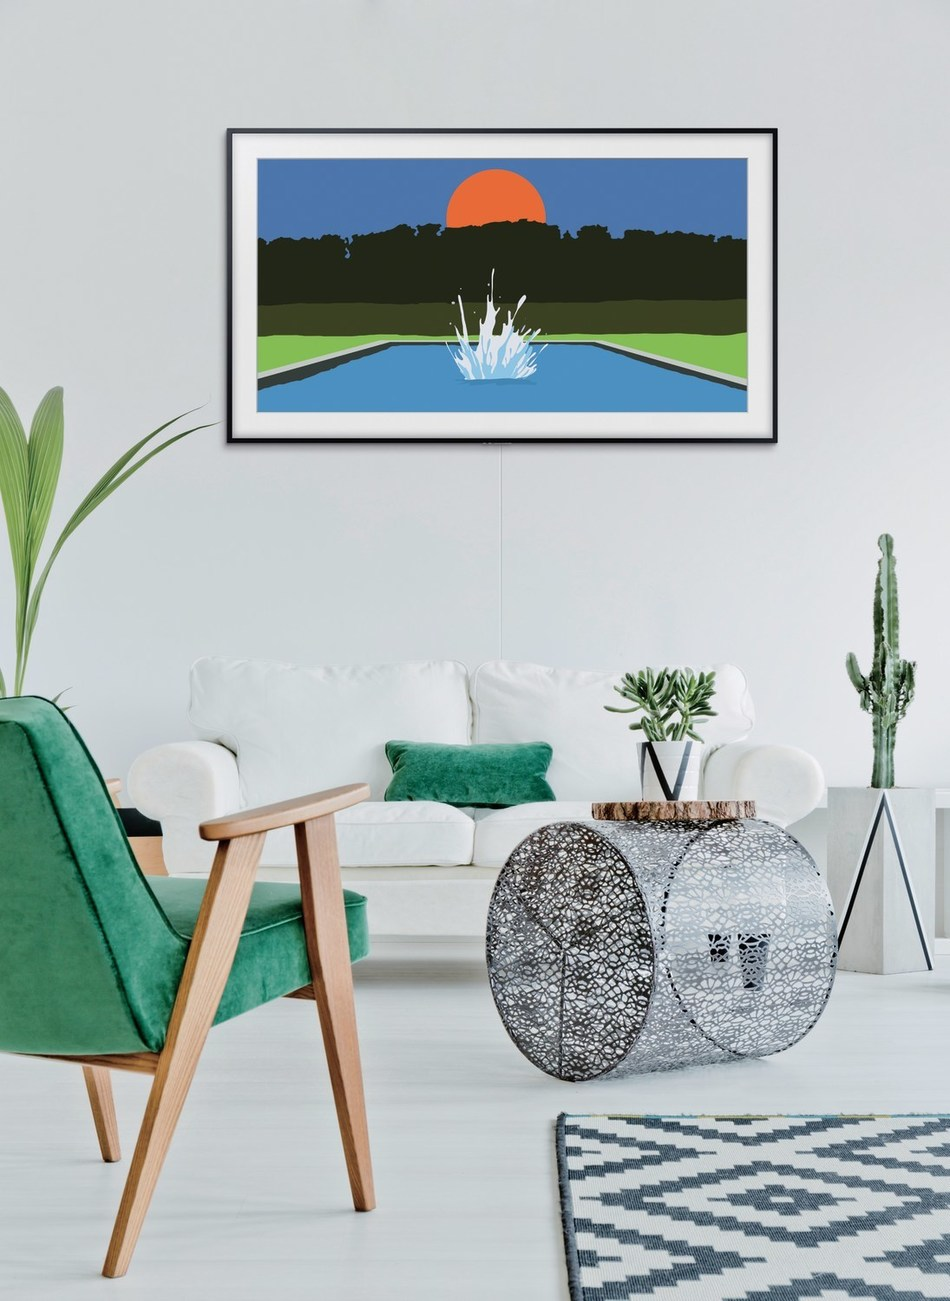 TV When It's On, Art When It's Off: Samsung Transforms Your Living Room with The Frame for 2018. (CNW Group/Samsung Electronics Canada)